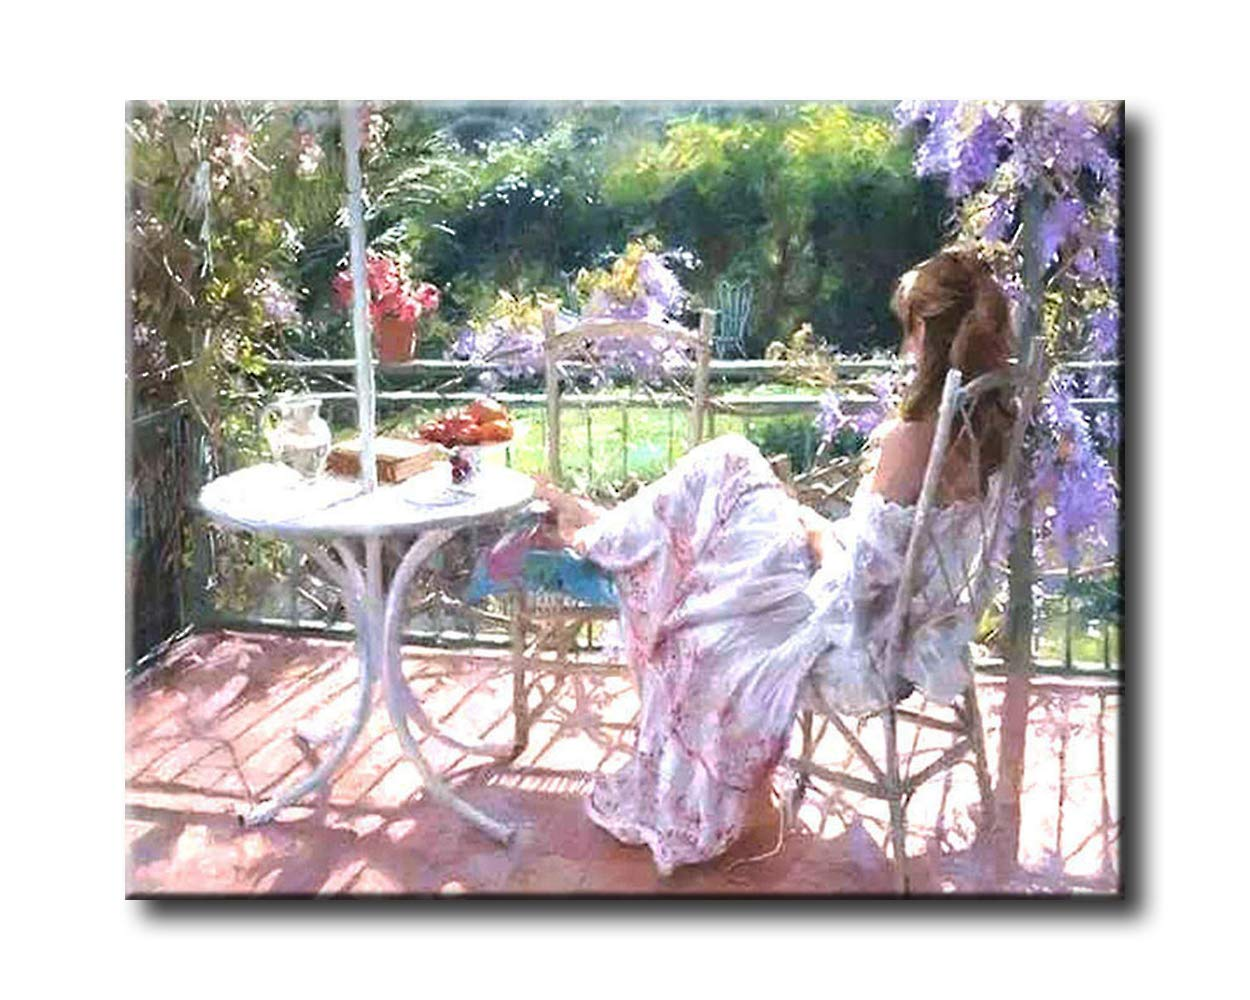 Paint by number Kits Shukqueen DIY dipinto a olio acrilico painting-cozy Afternoon 40,6/ x 50,8/ cm adulto Framed Canvas